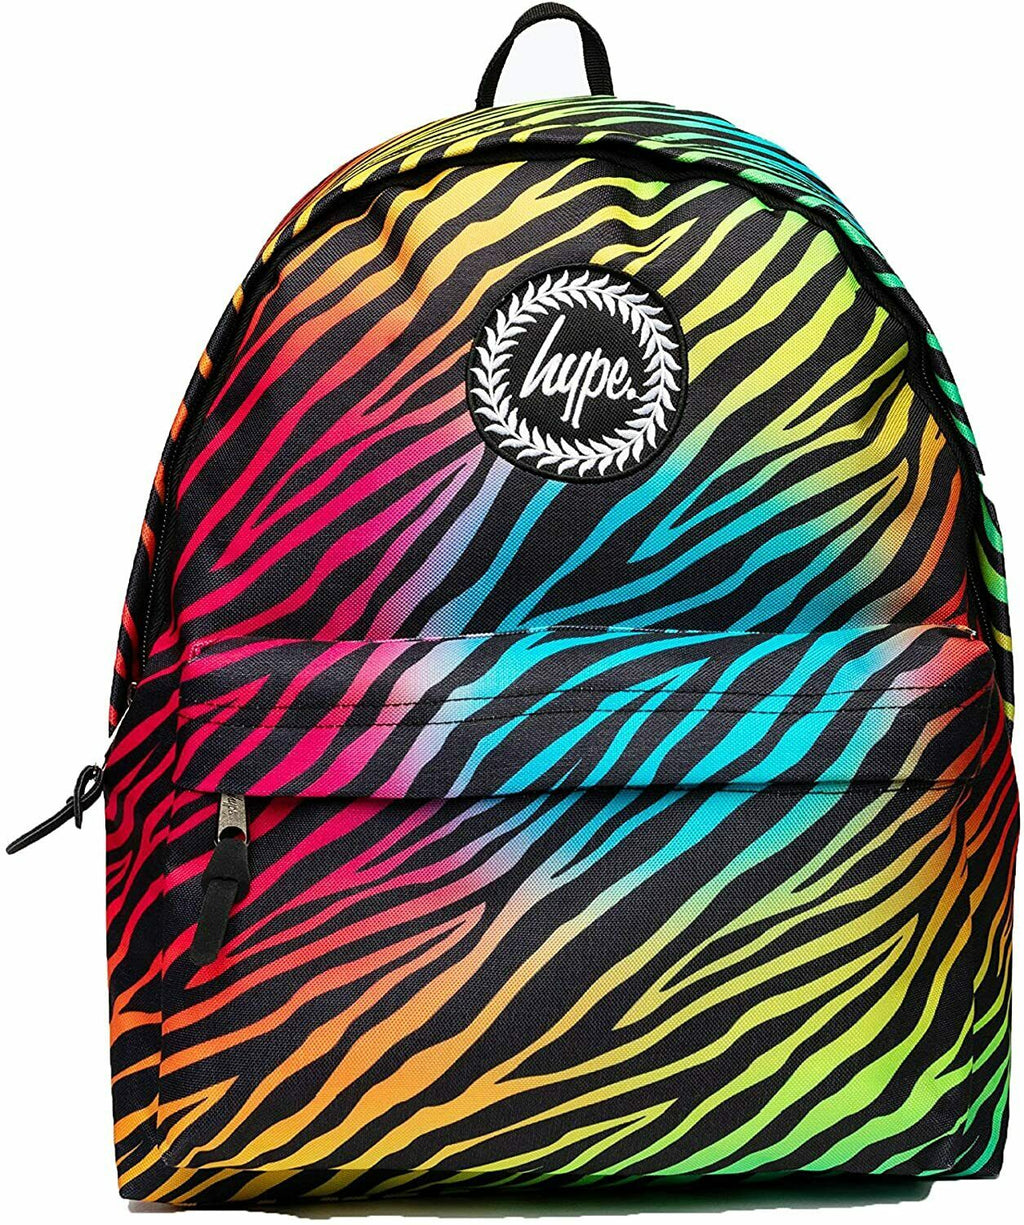 Disco Zebra Backpack